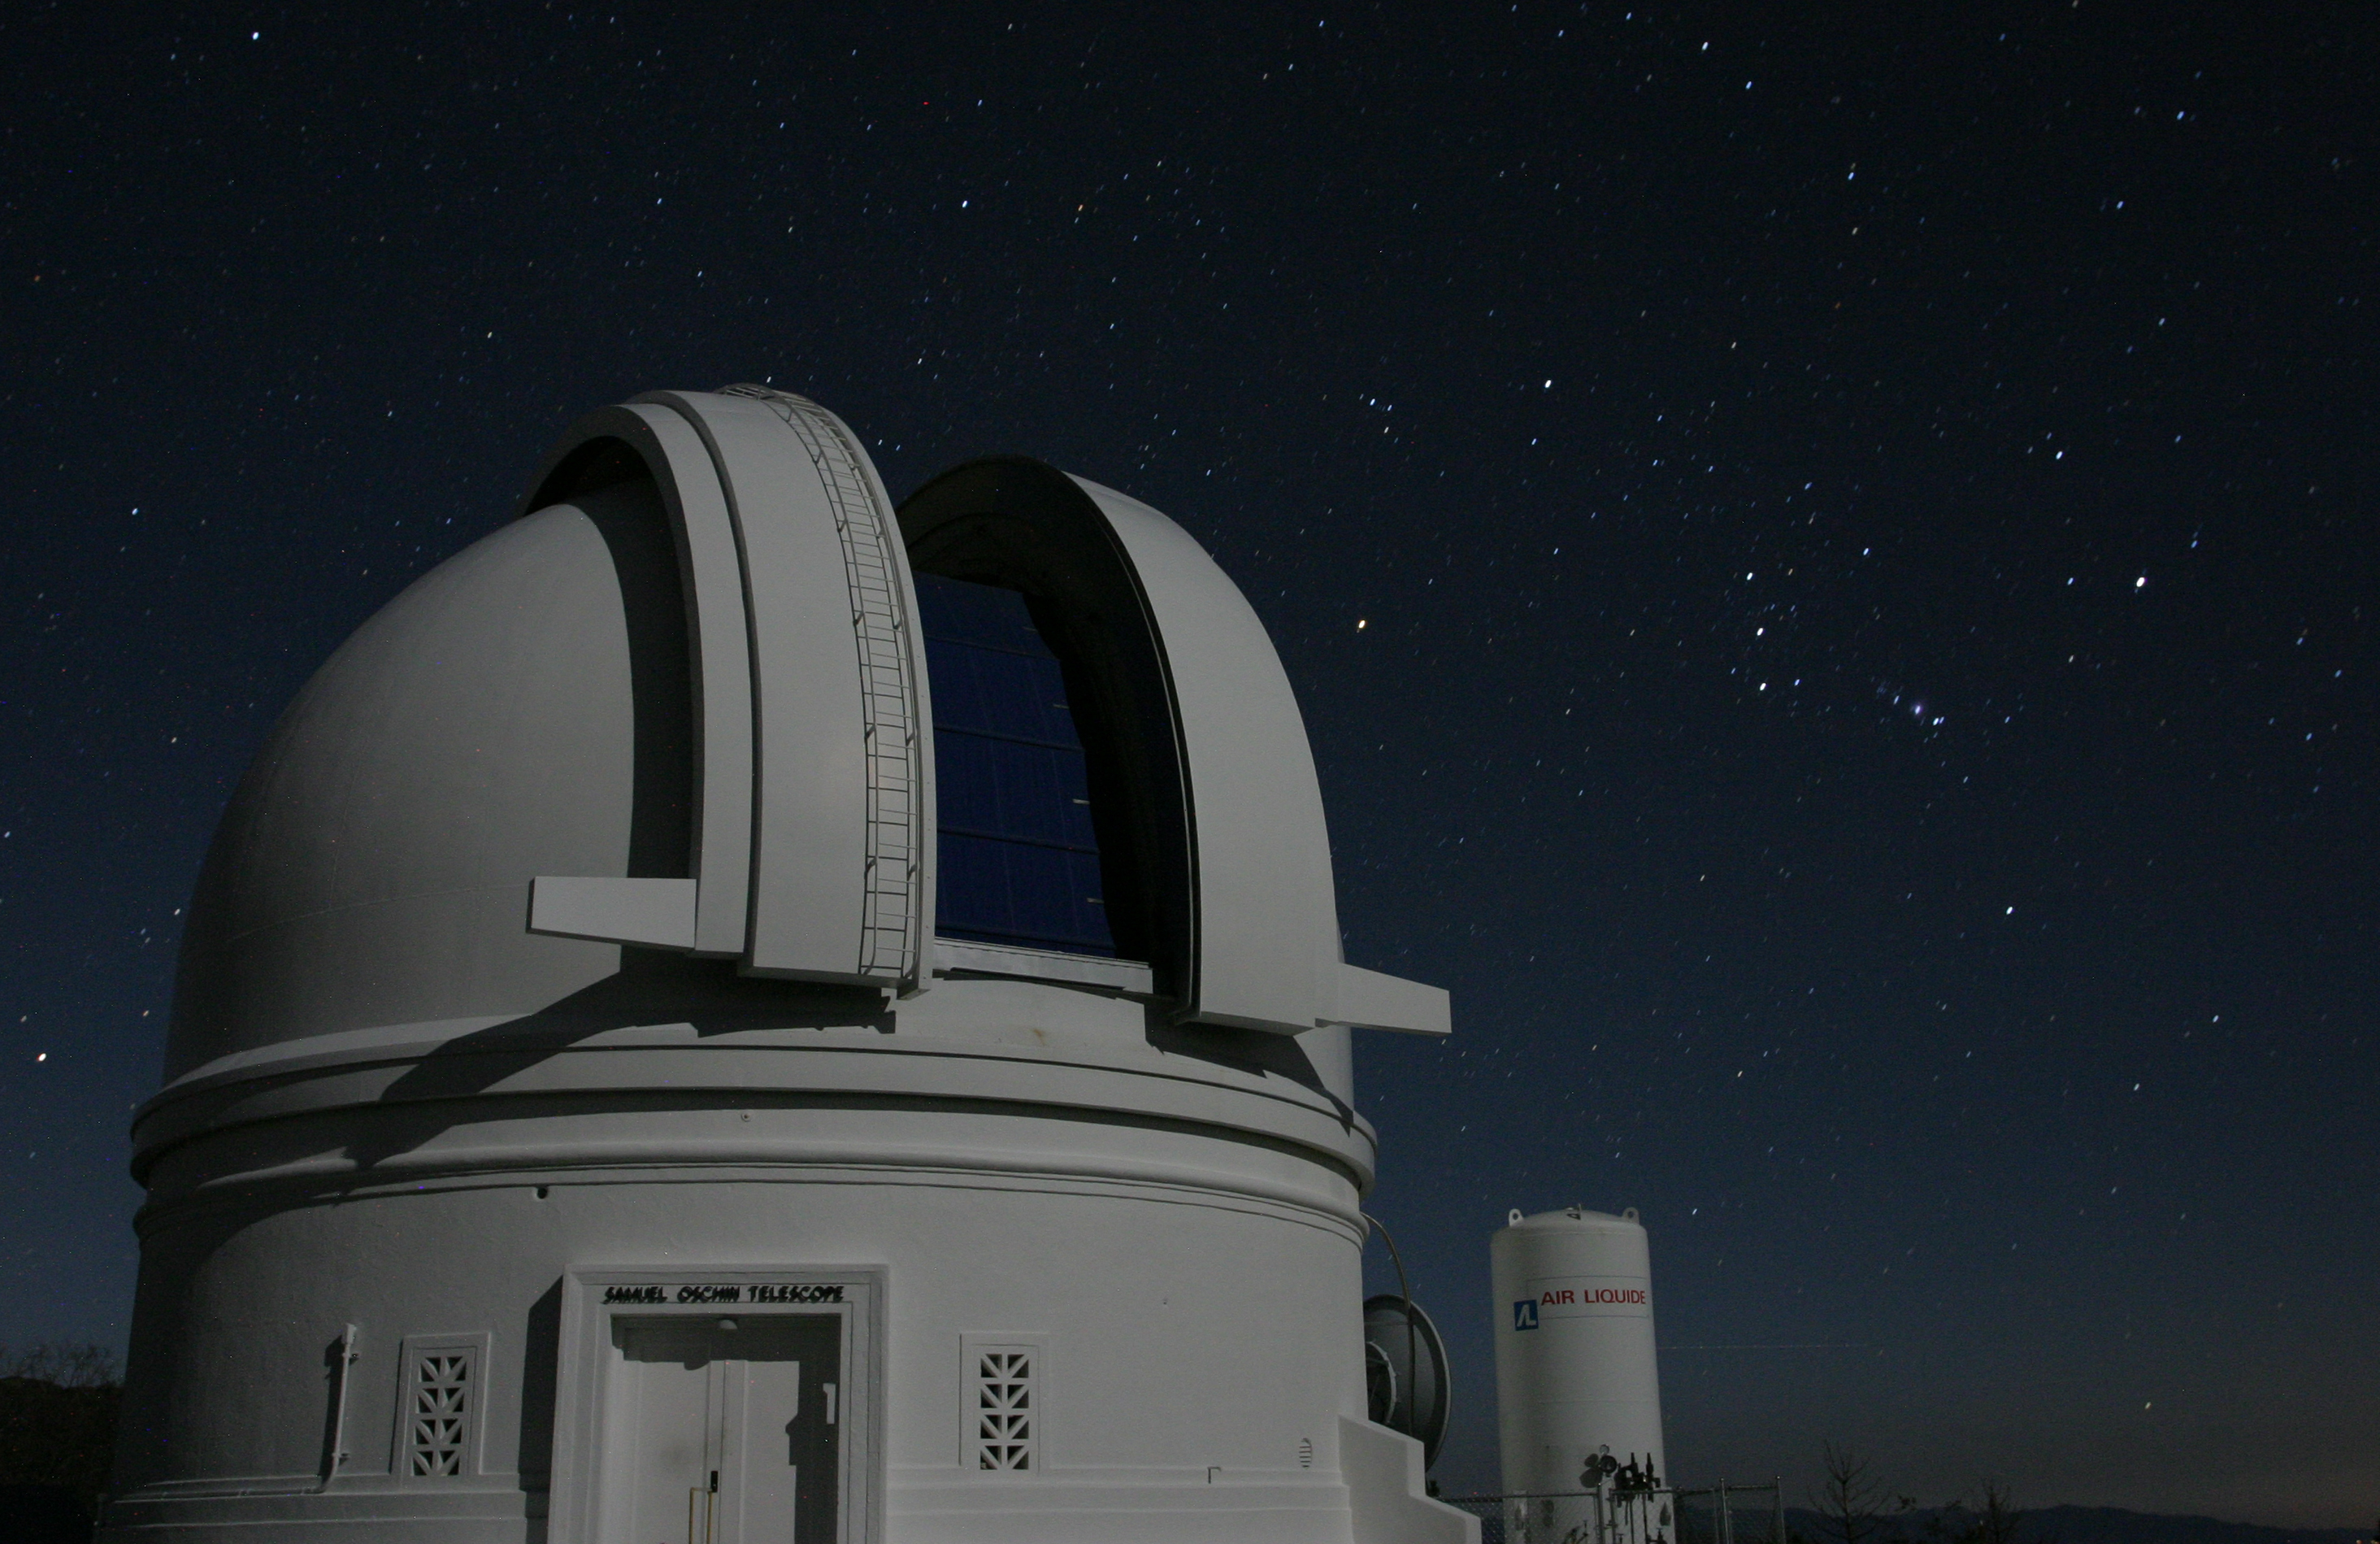 a study of the pictures from palomar observatory The iptf takes advantage of the palomar observatory and its unique capabilities to scan the skies and discover, in near real-time, fast-changing cosmic events such as supernovas growth manages a global network of researchers and telescopes that can swiftly perform follow-up observations to study these transient events in detail.